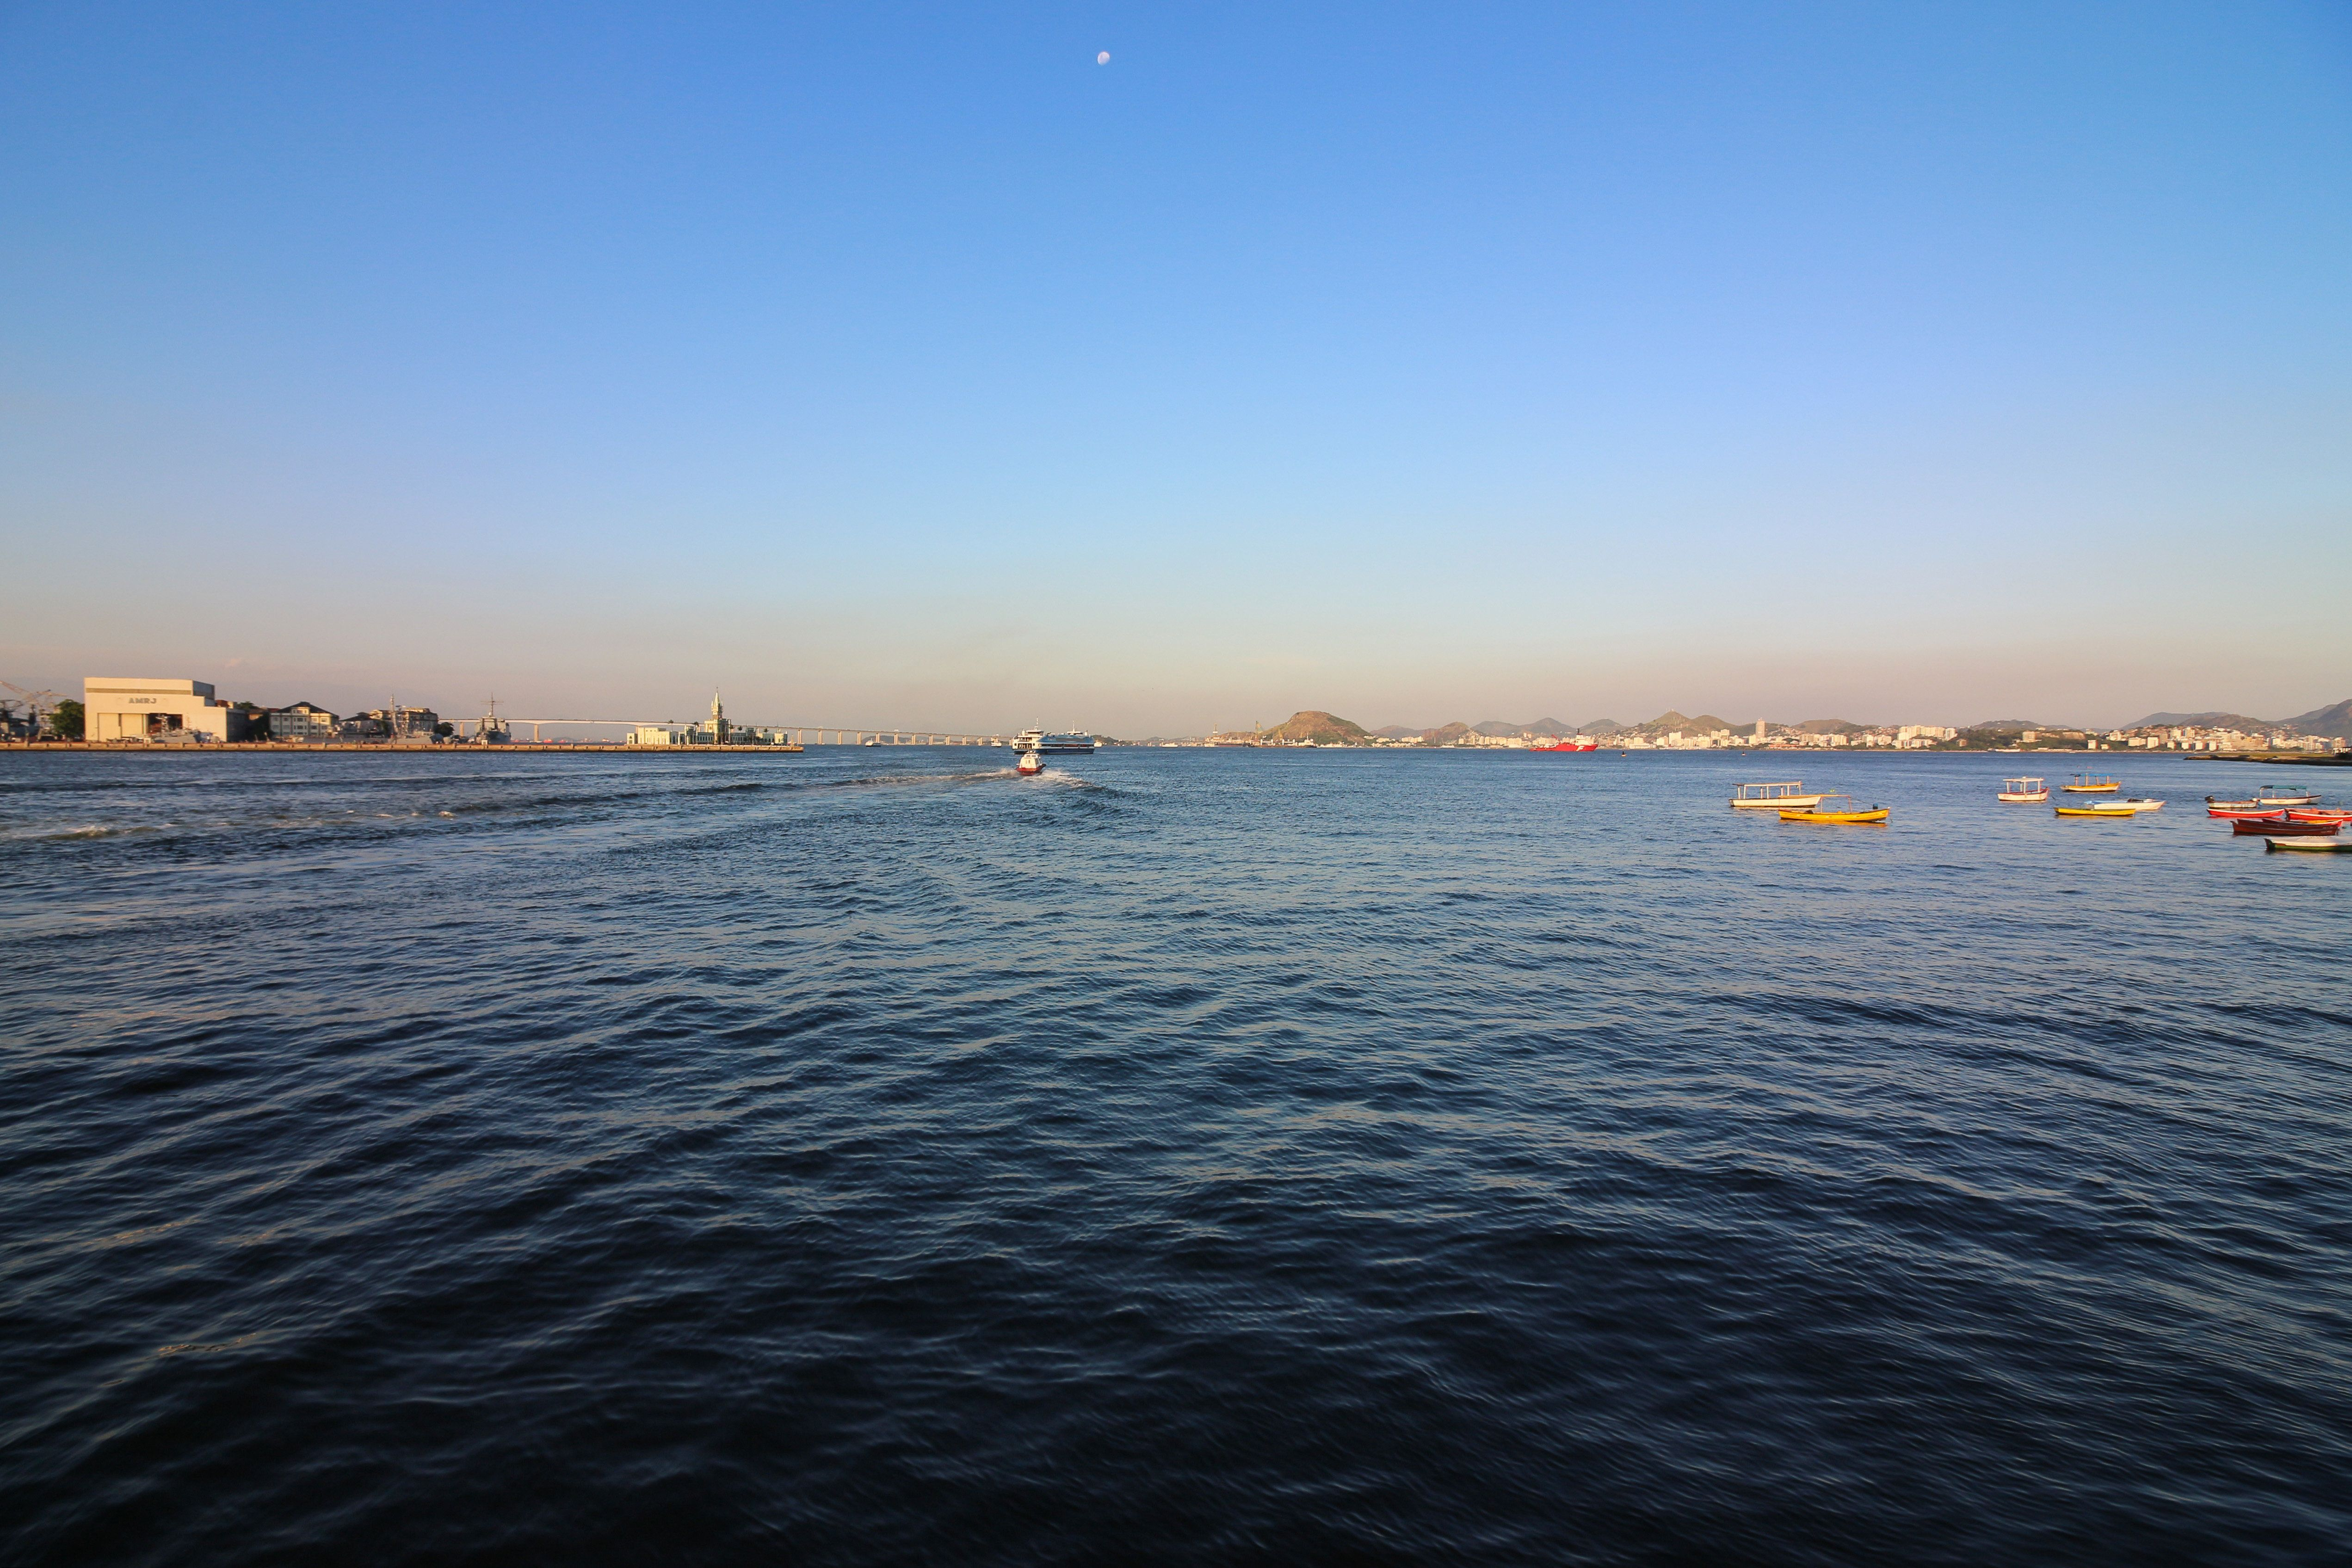 Rio de Janeiro, Brazil, January 17, 2019: Rio de Janeiro lives days of intense heat with temperatures surpassing 35 degrees Celsius. In this image: Guanabara Bay seen from Downtown Rio at dusk. (Photo by Luiz Souza/NurPhoto via Getty Images)